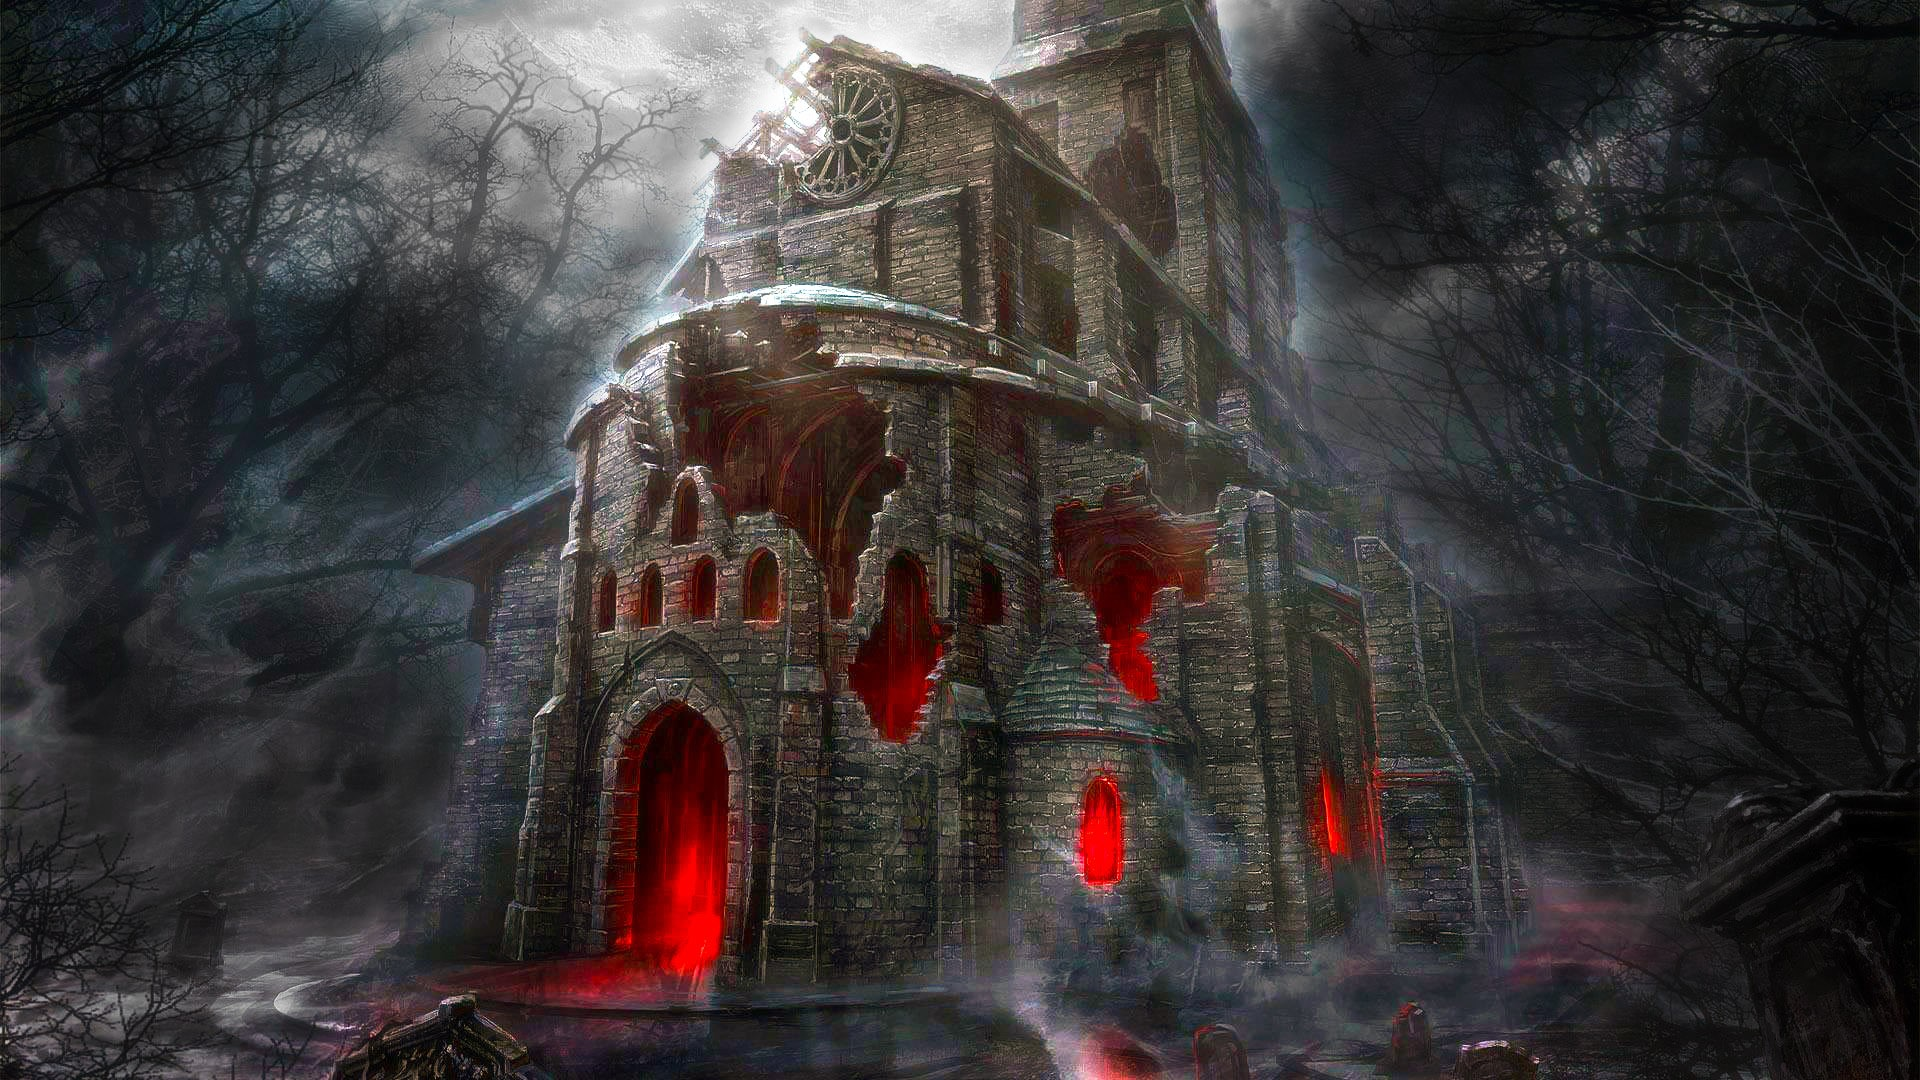 Horror wallpaper download free amazing wallpapers for - Scary animated backgrounds ...